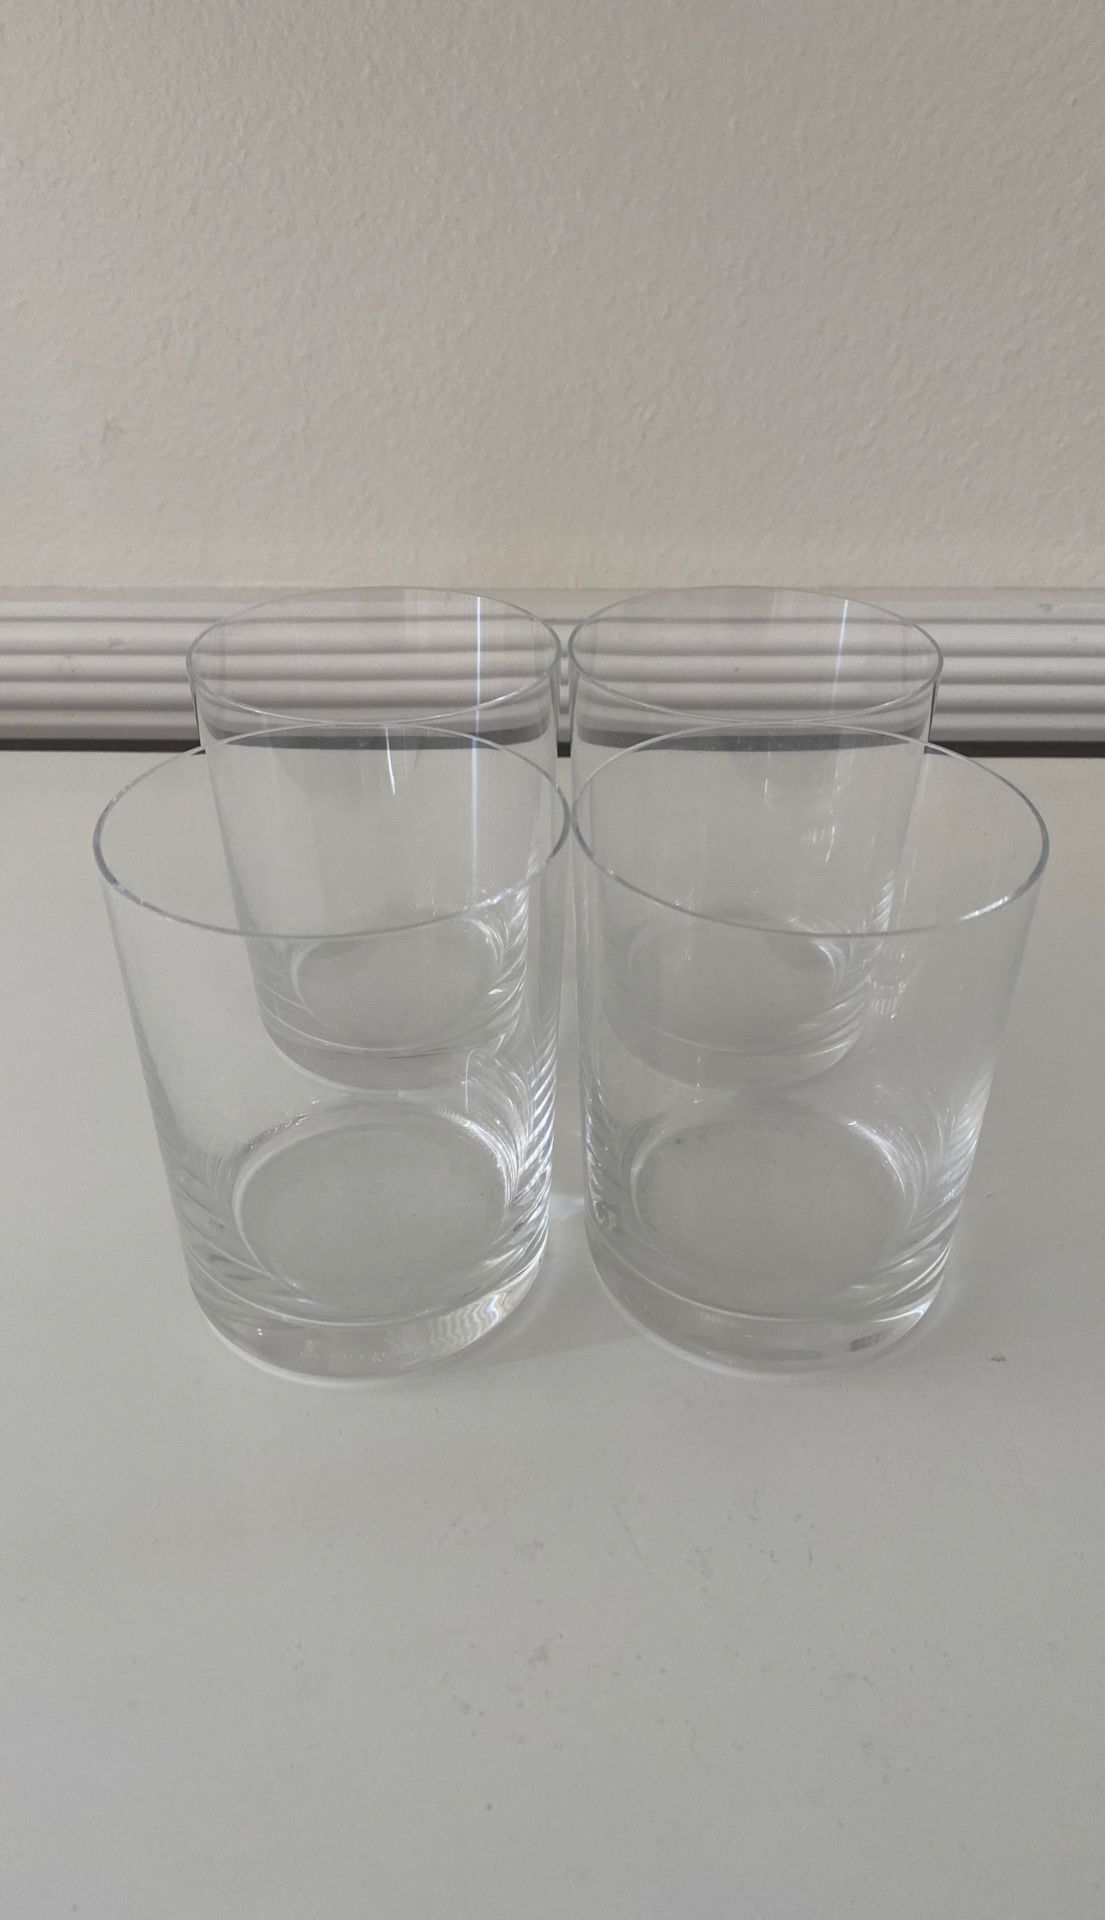 Waterford Crystal Double Old Fashioned Glasses (Set of 4)